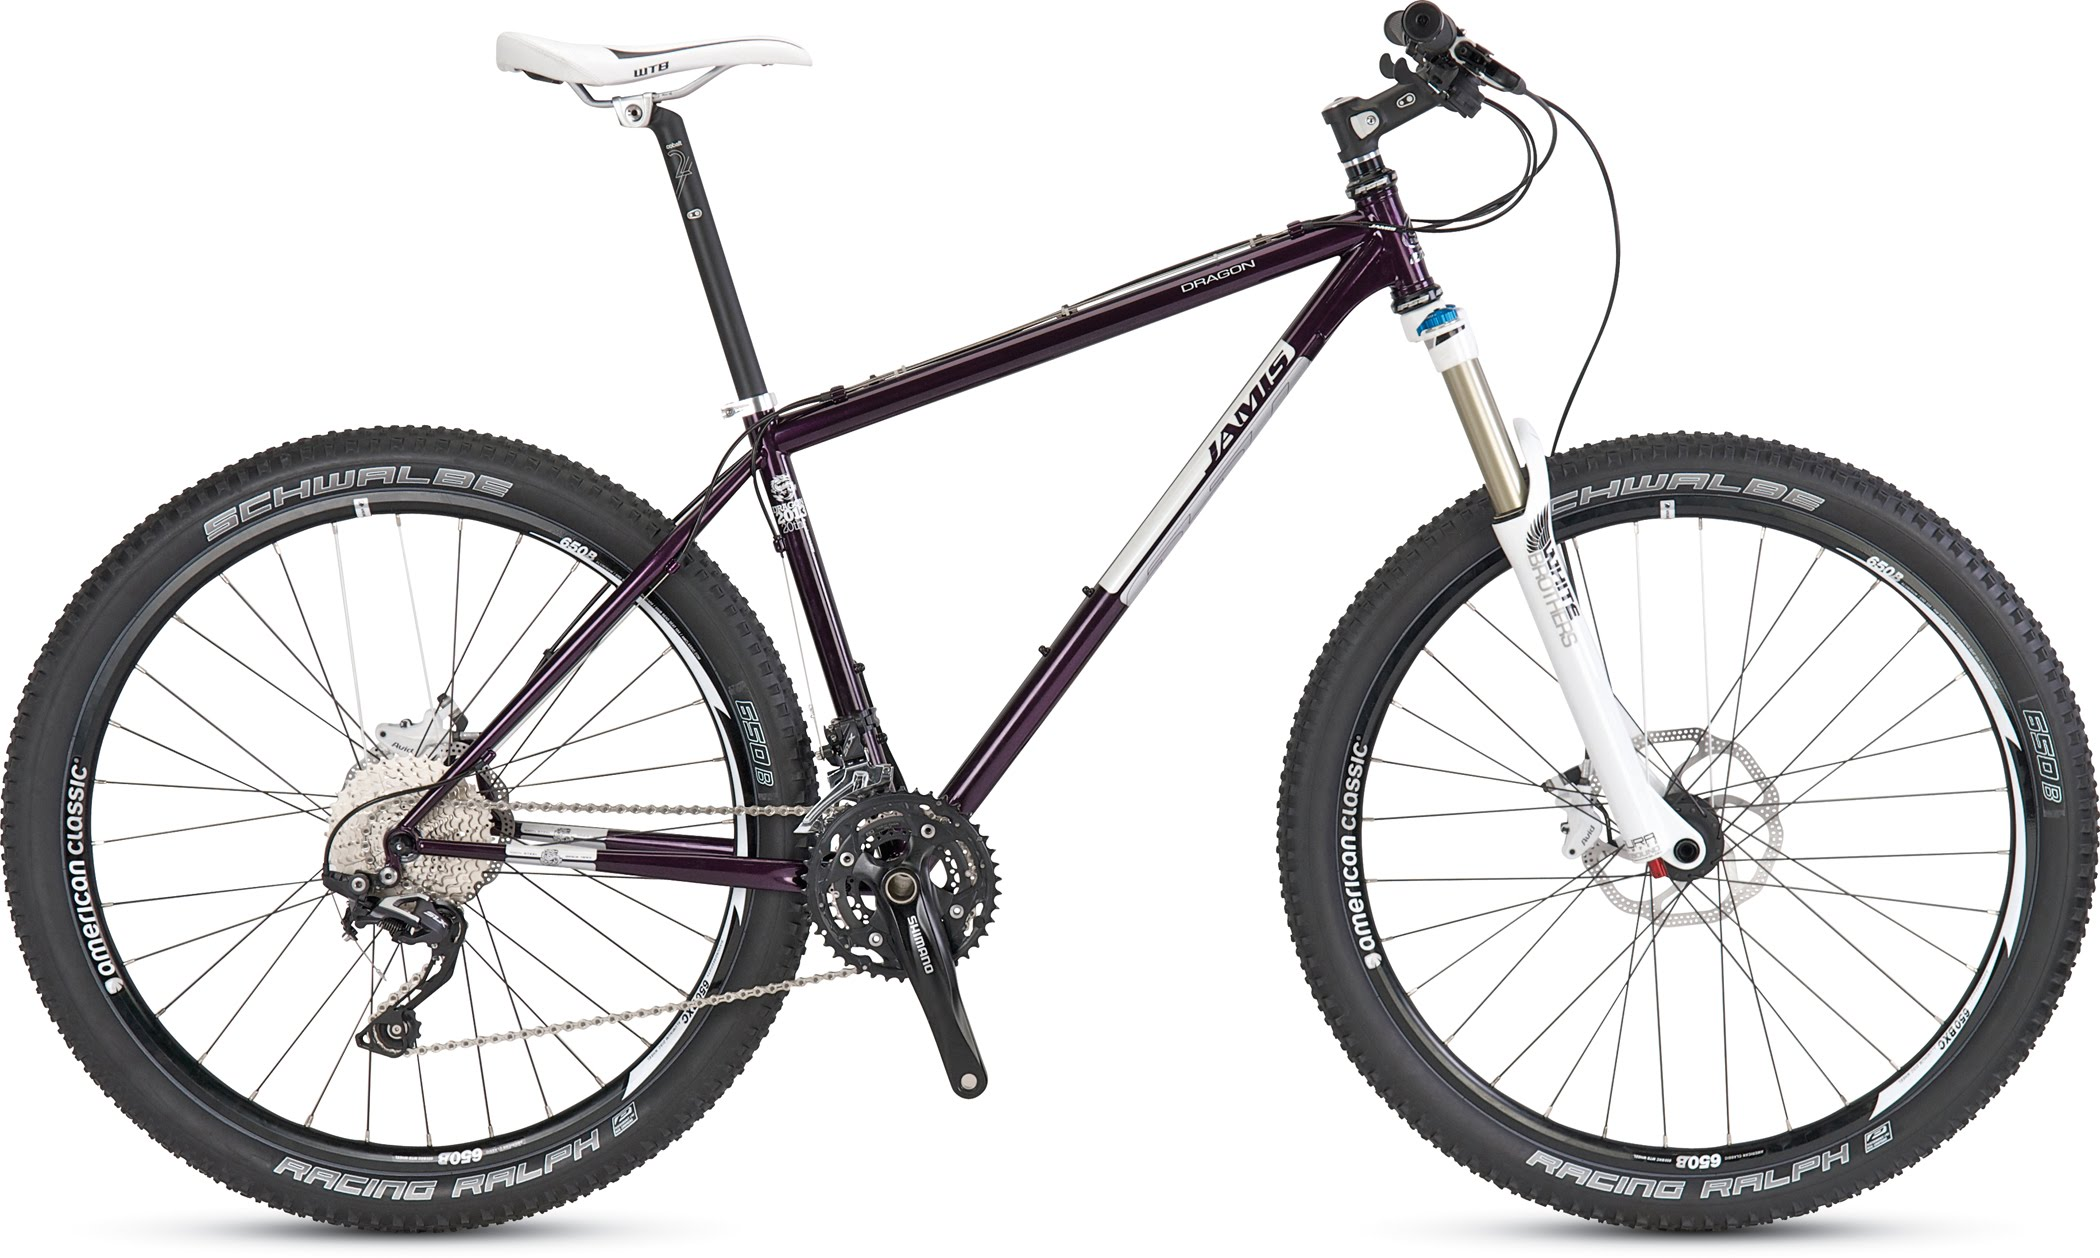 2013 Jamis Dragon 650 is on sale at Eddie's Bicycles.